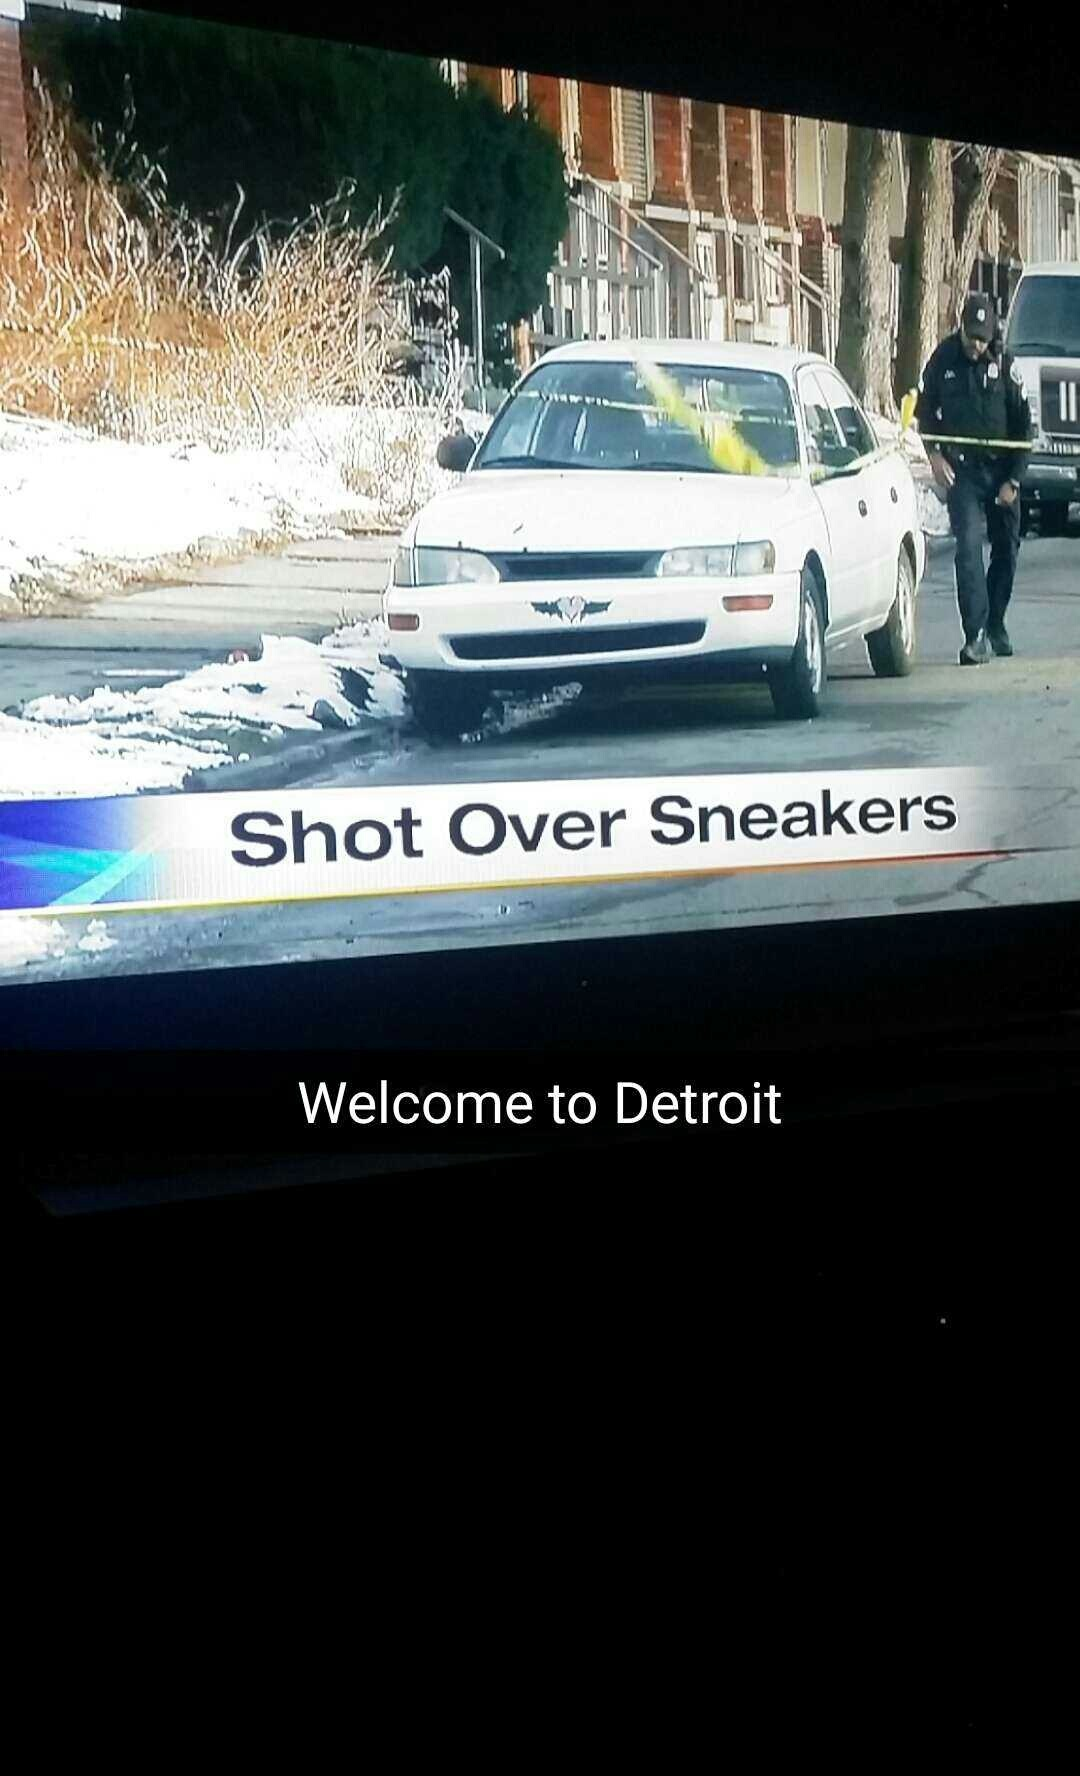 So this was on my local news - meme